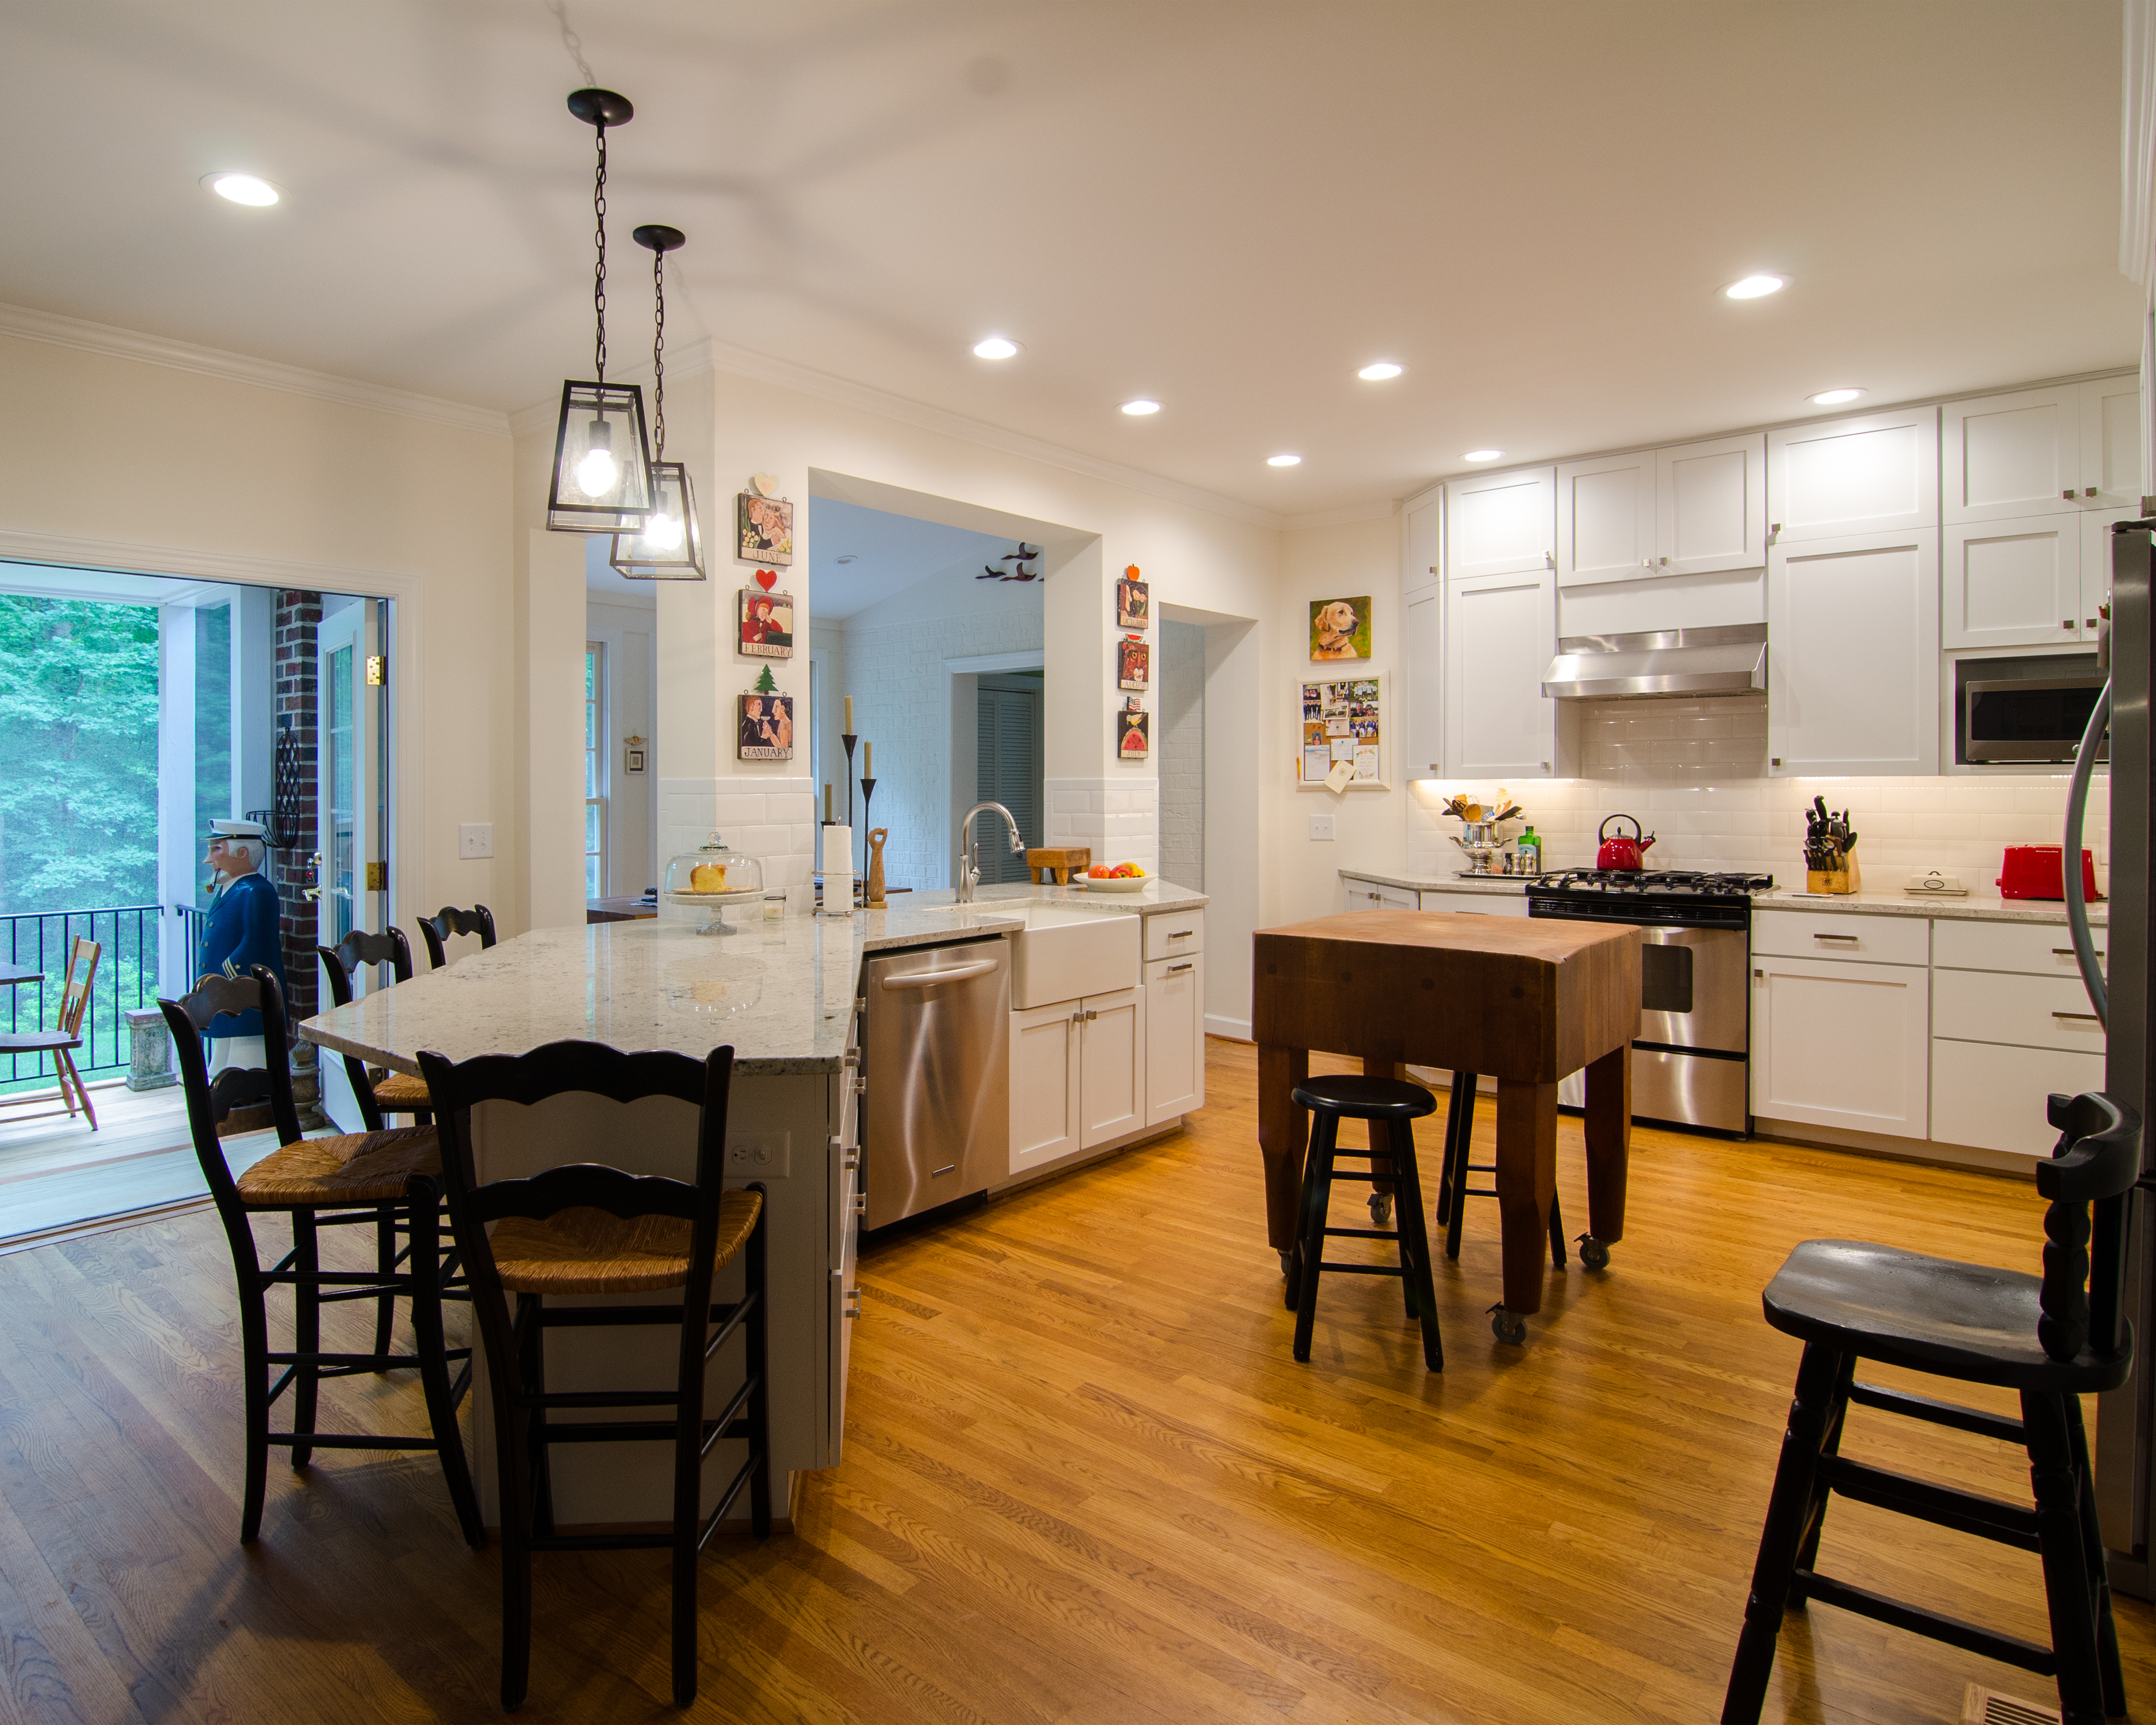 Do I Need A Building Permit To Remodel My Kitchen – PPI Blog